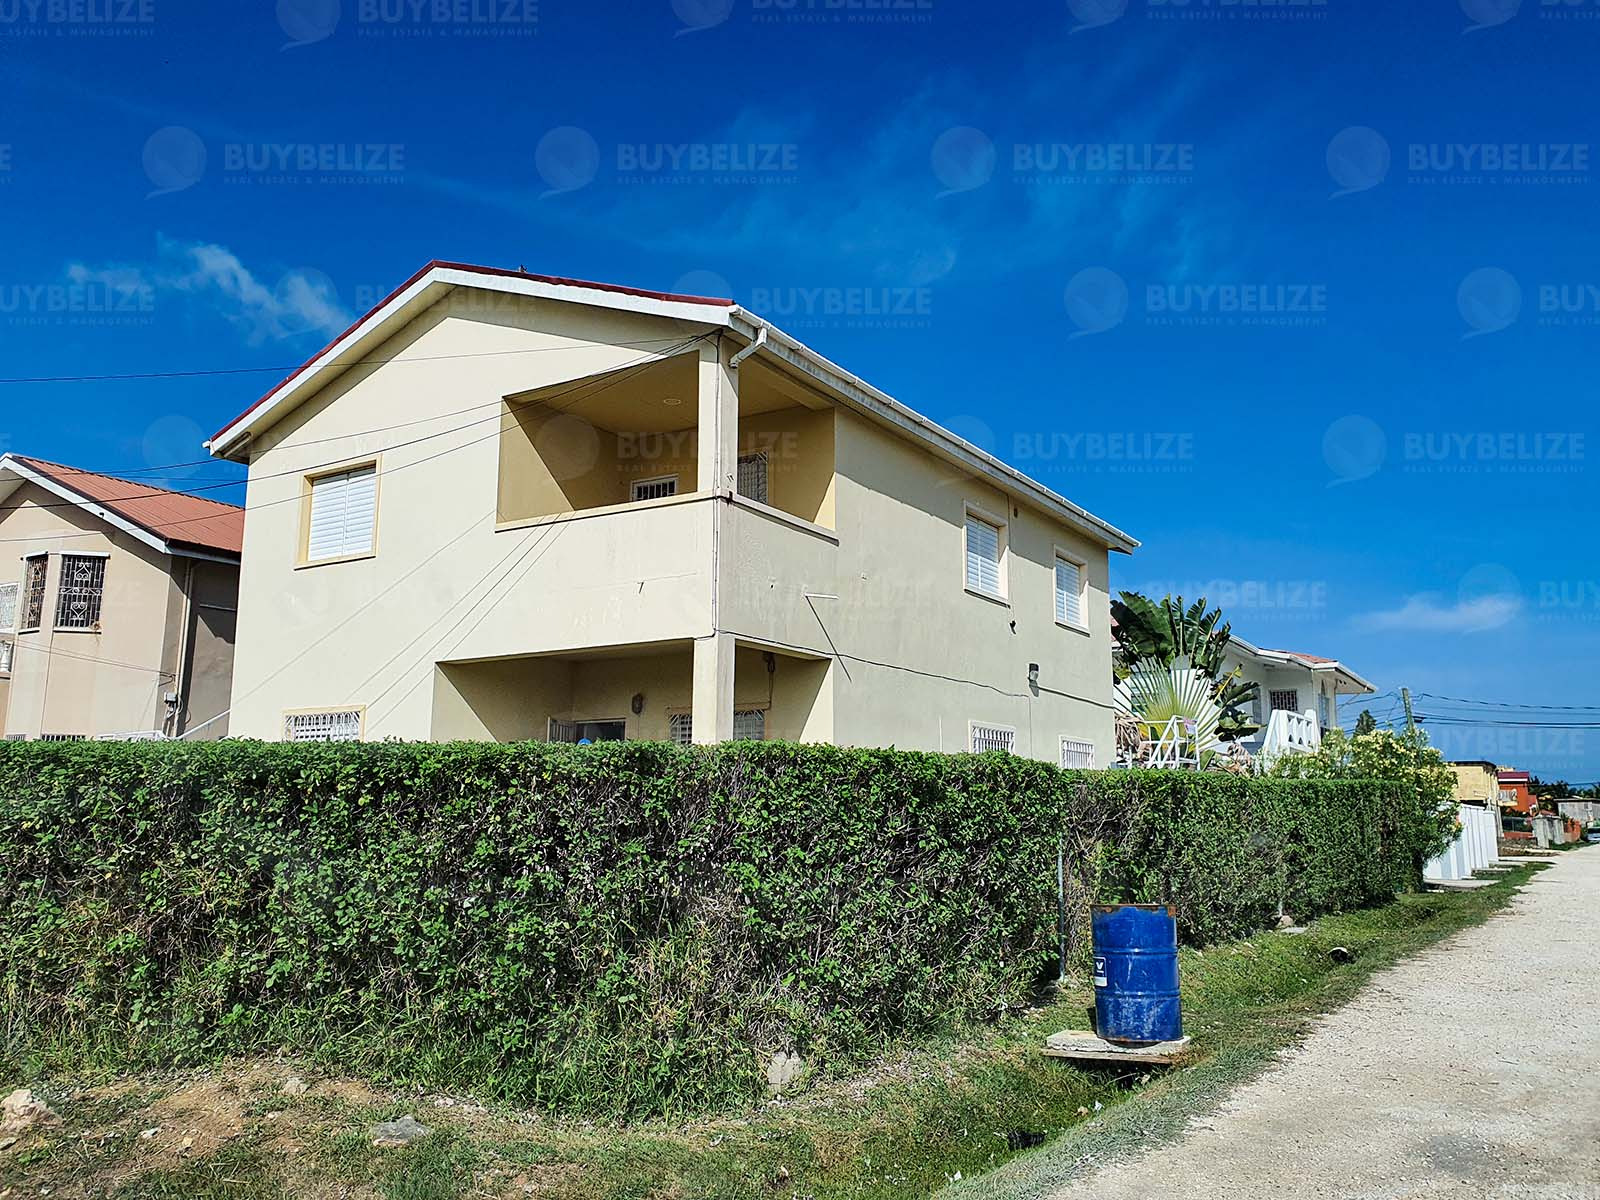 2 Bedroom 1 Bathroom Apartment For Rent in Buttonwood Bay